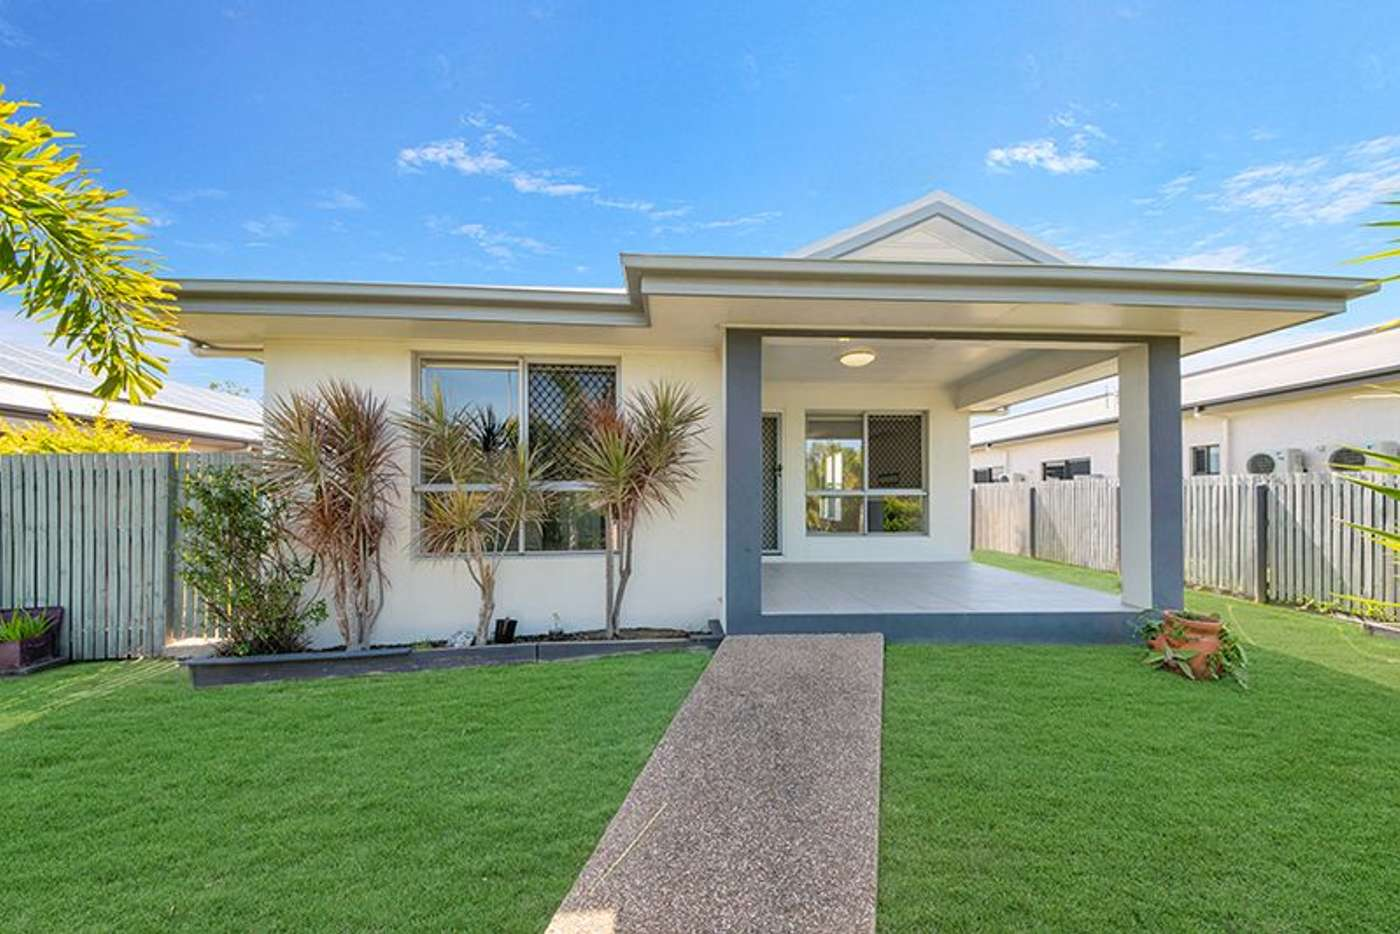 Main view of Homely house listing, 56 Izaro Circuit, Burdell QLD 4818